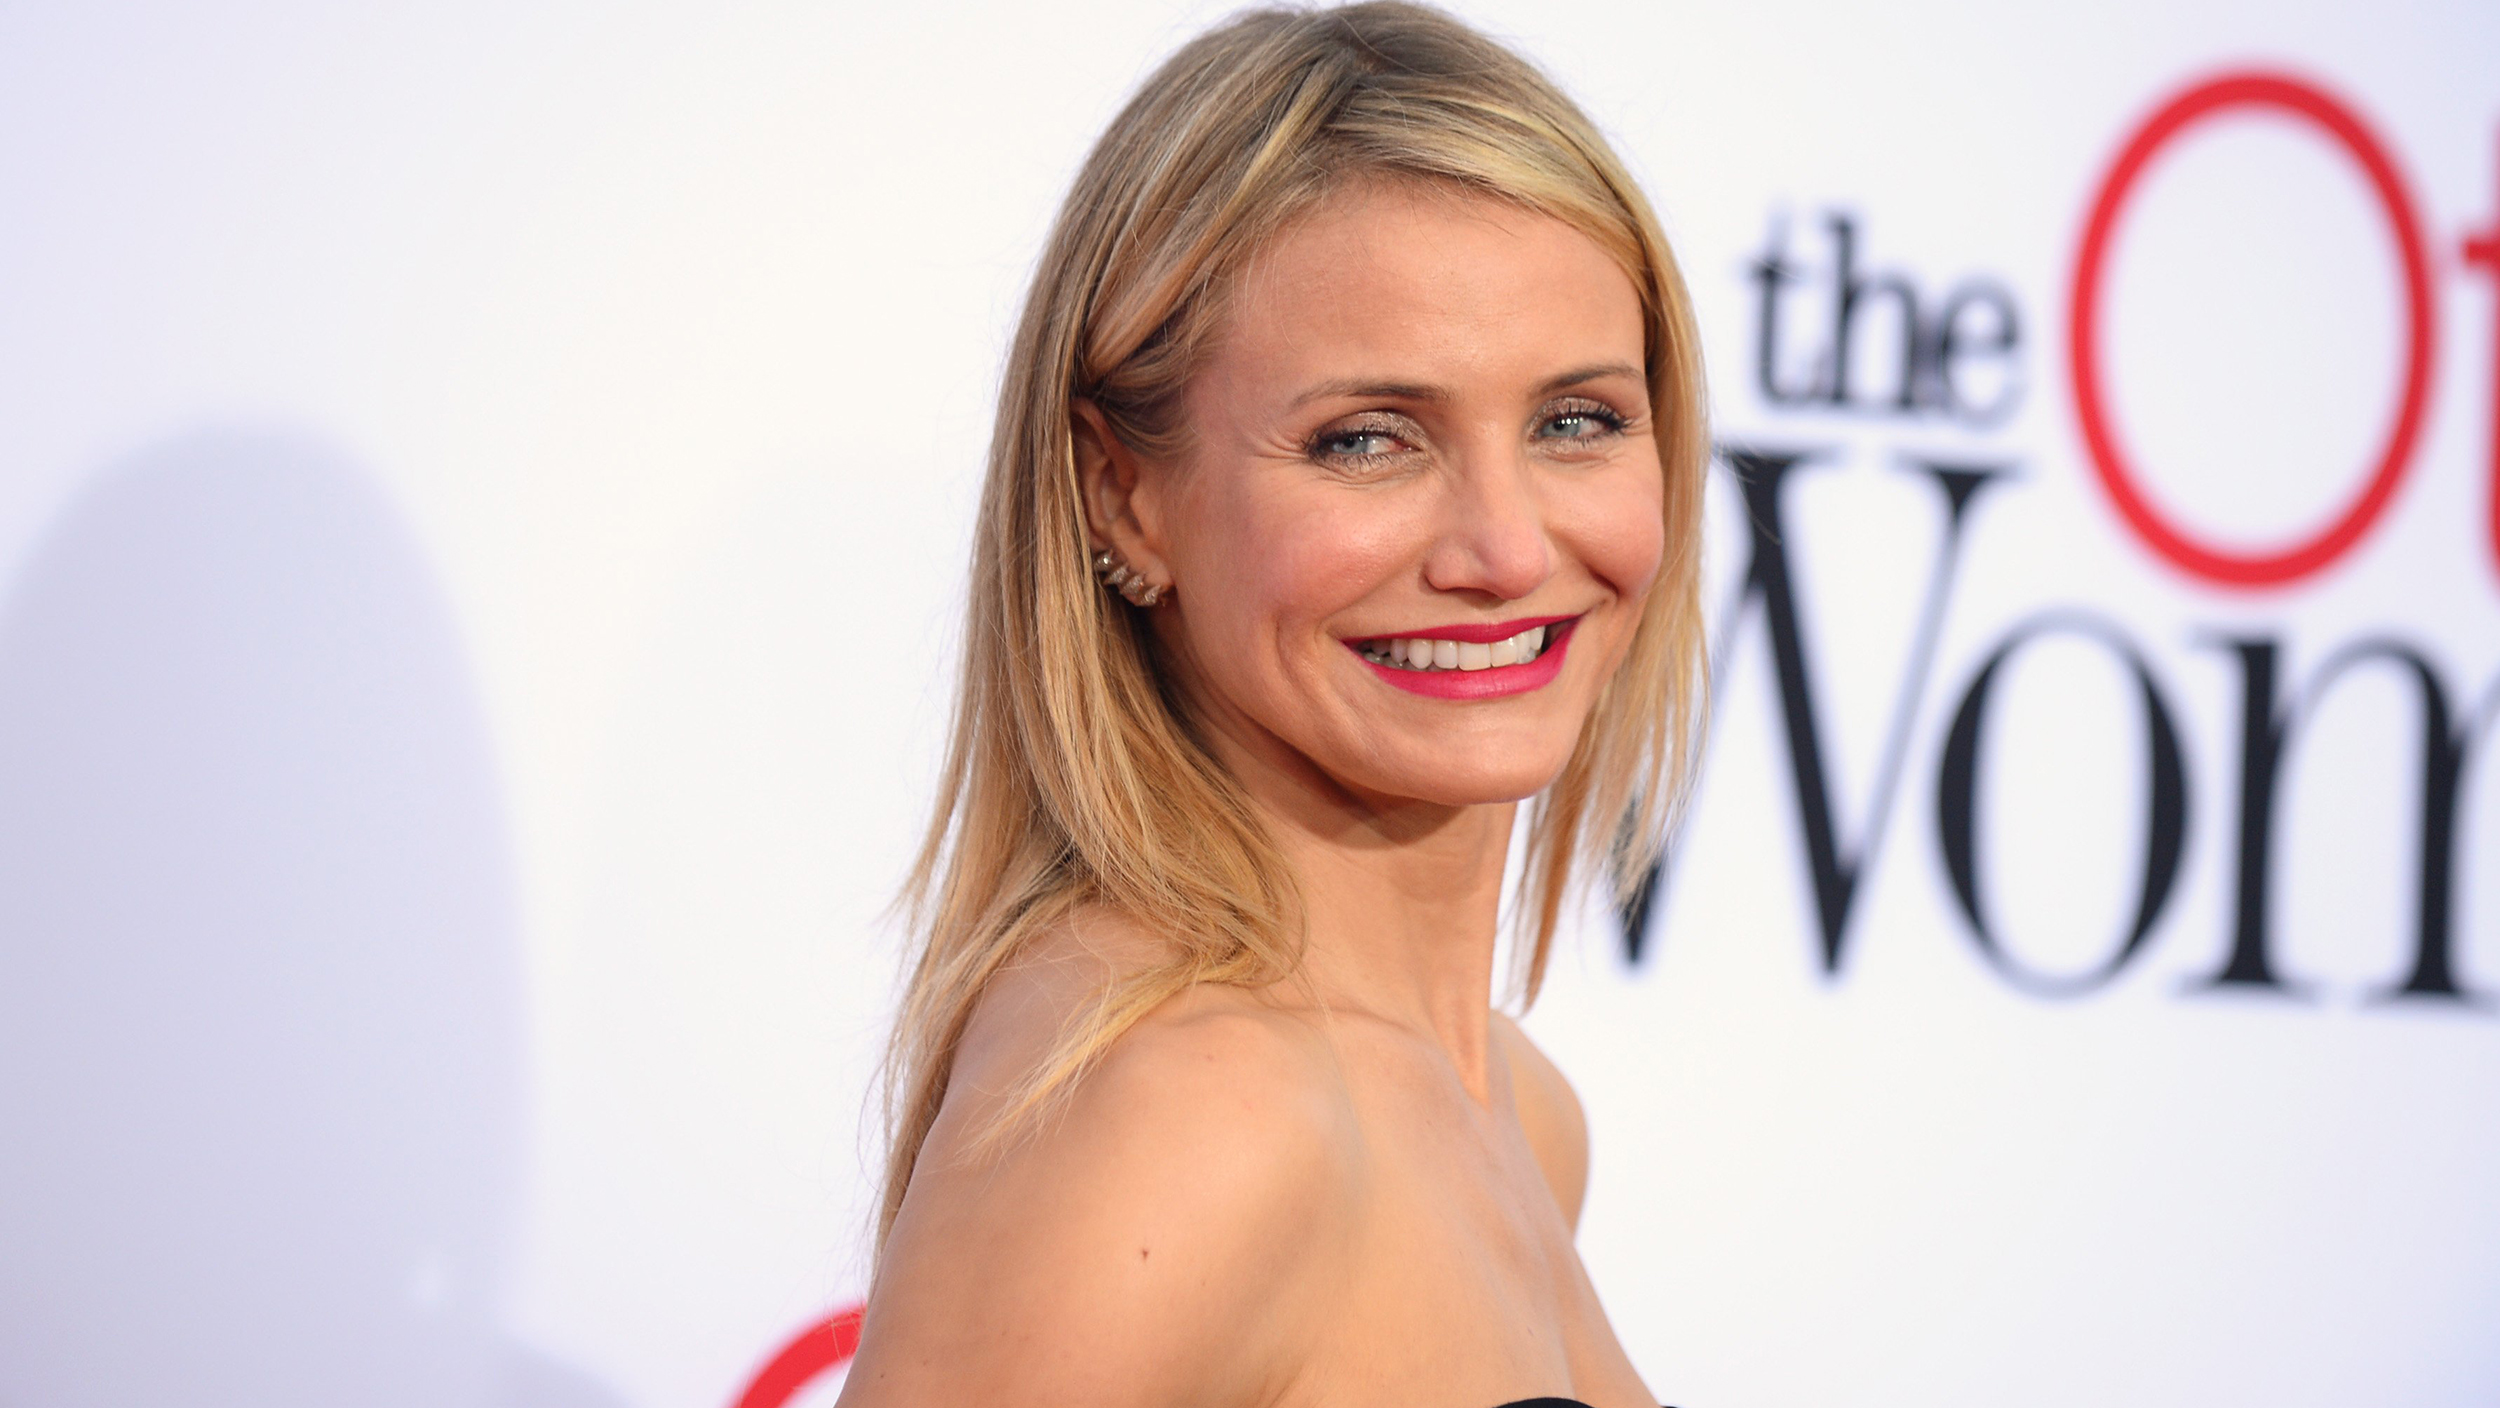 Child Free By Choice How Cameron Diaz Represents Women